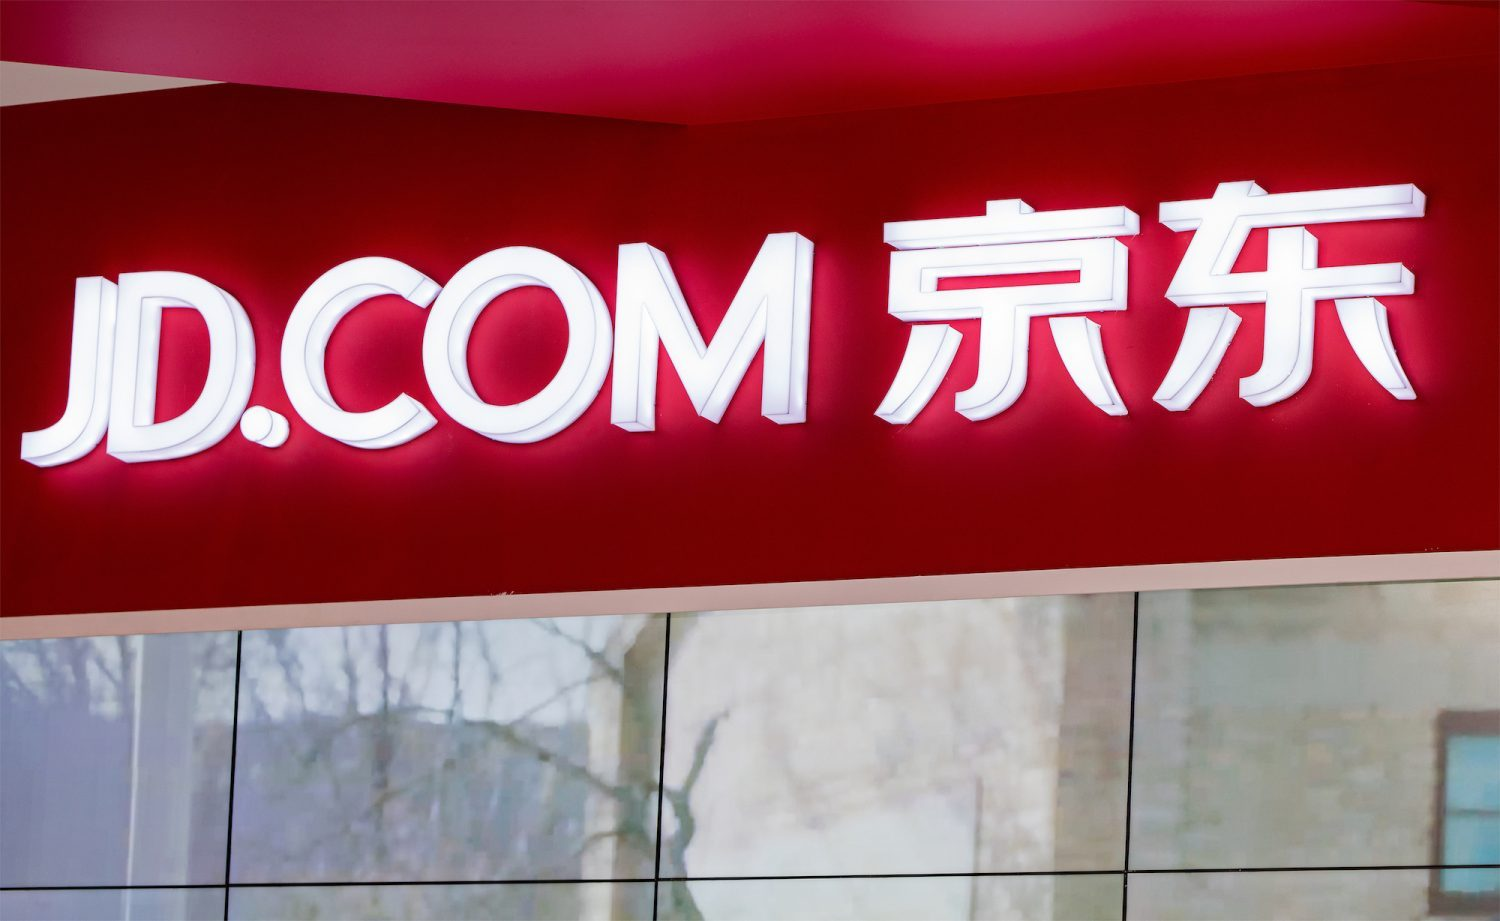 JD.com's Finance Arm to Issue Asset-Backed Securities on a Blockchain